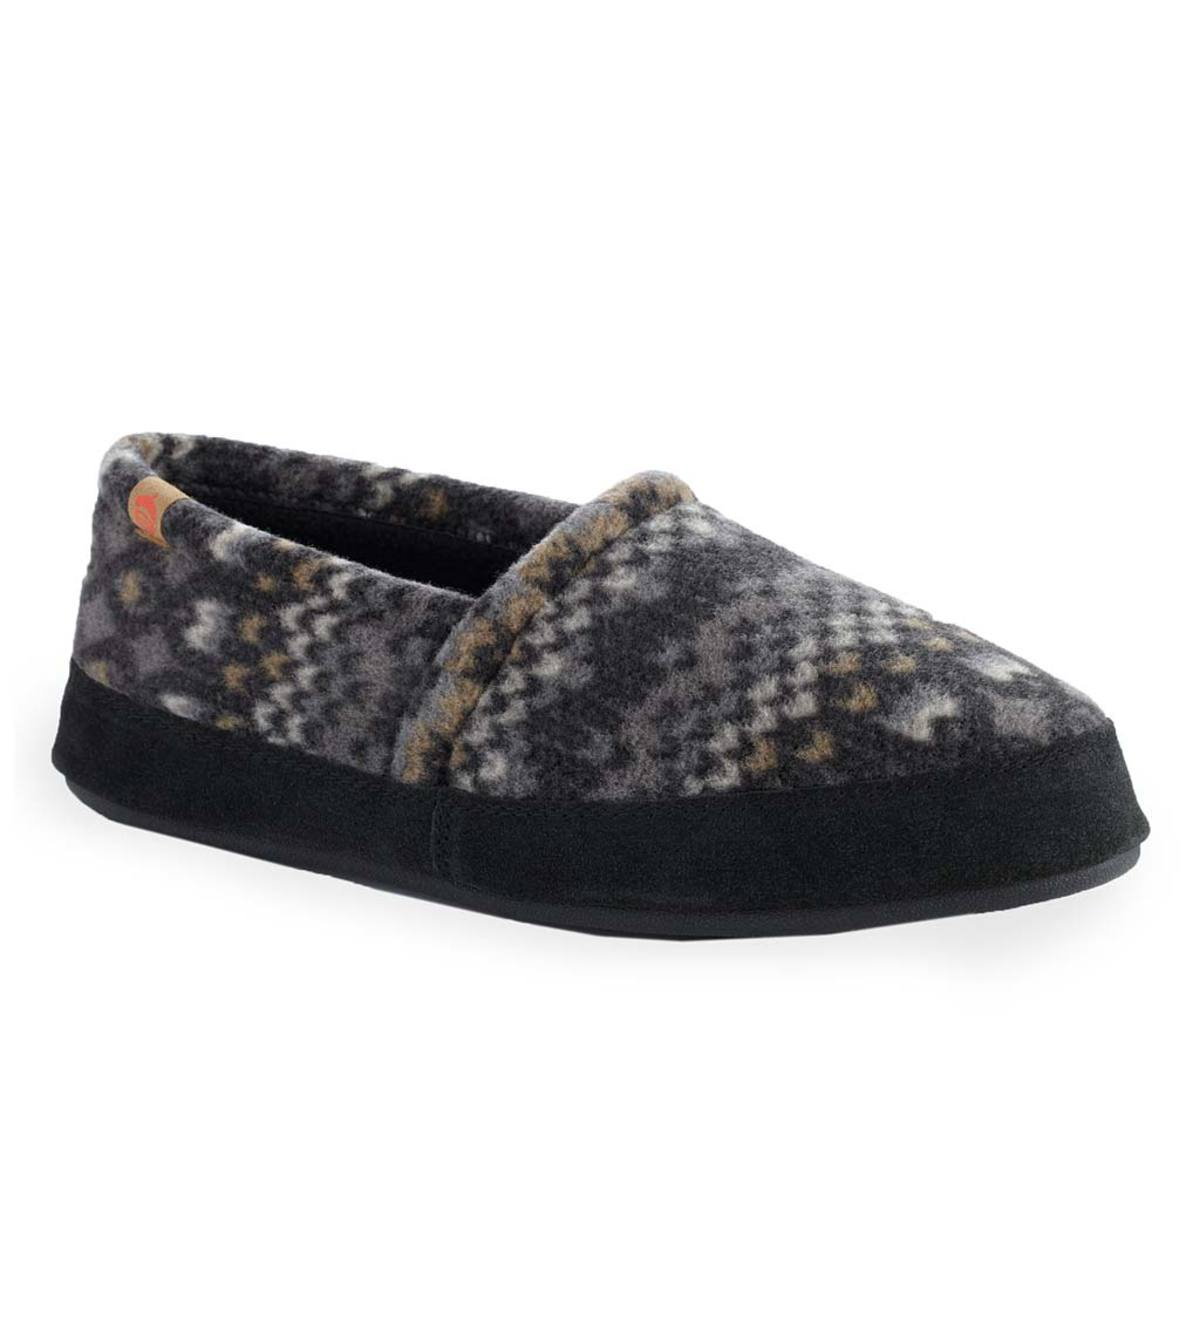 Men's Acorn® Moc Slippers - Charcoal Cable - XL(12-13)